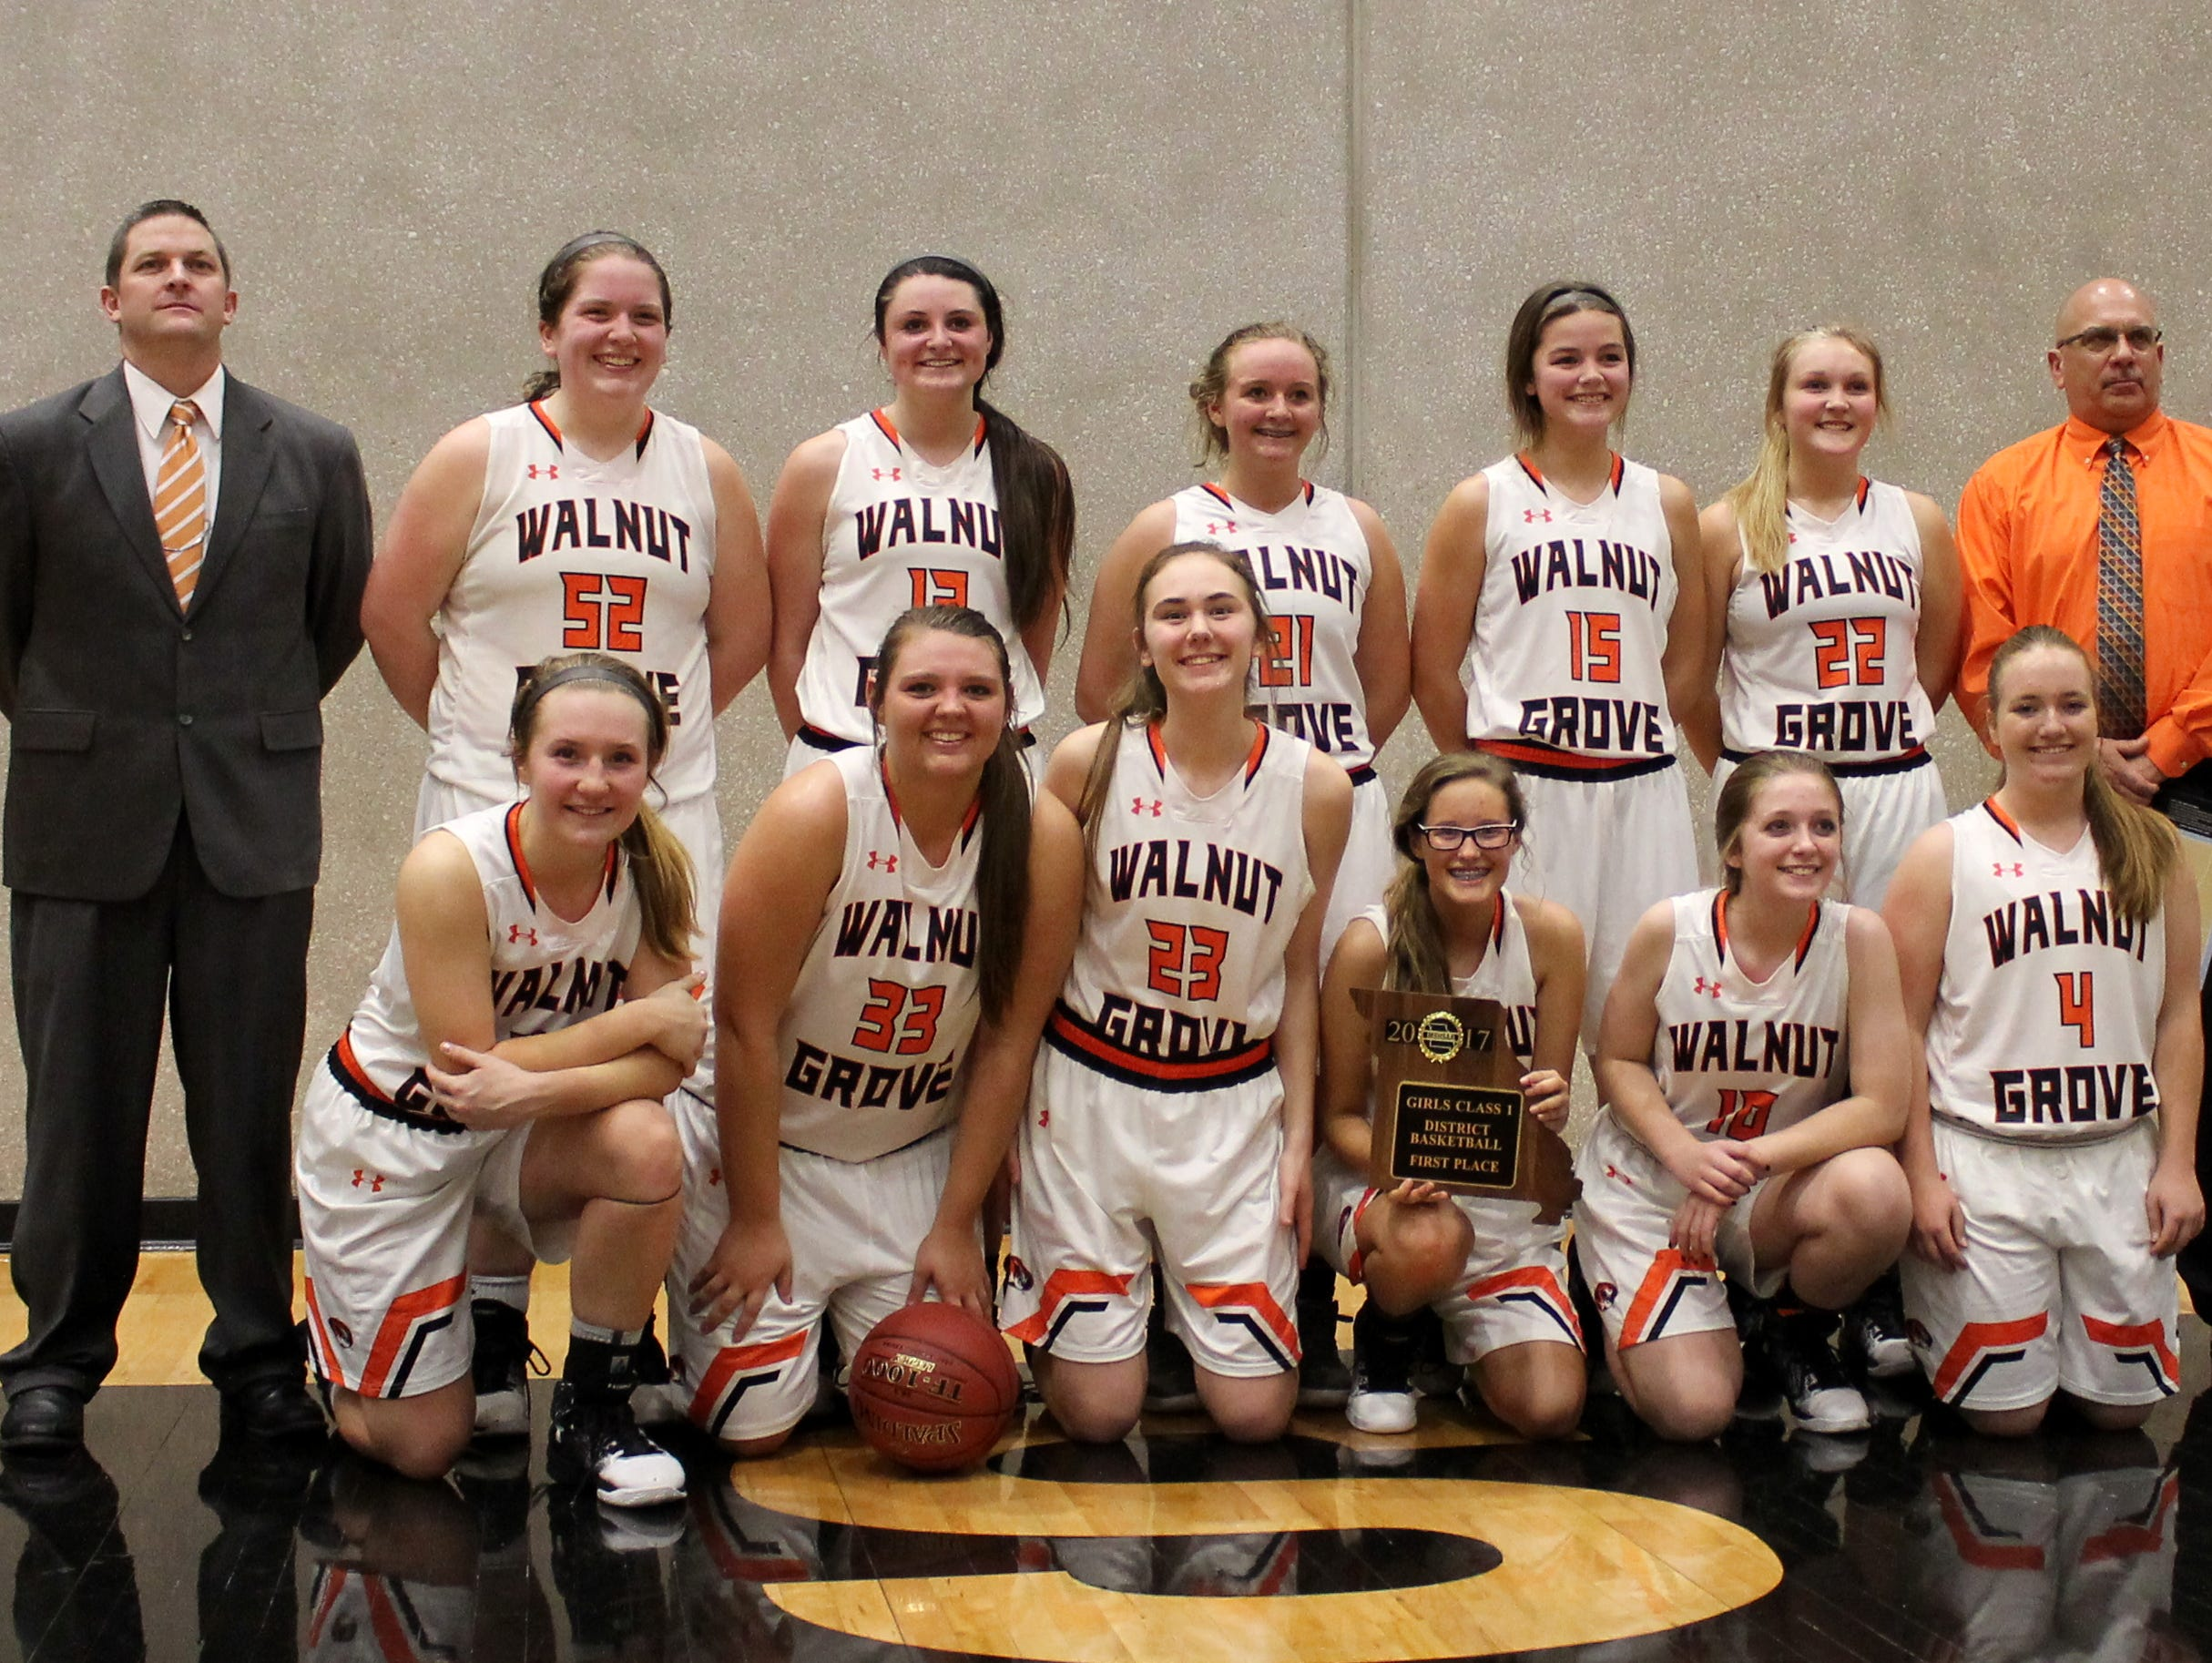 Walnut Grove High School's girls basketball team celebrates winning a seventh consecutive Class 1 district basketball championship Thursday, Feb. 23, 2017 at Willard High School.